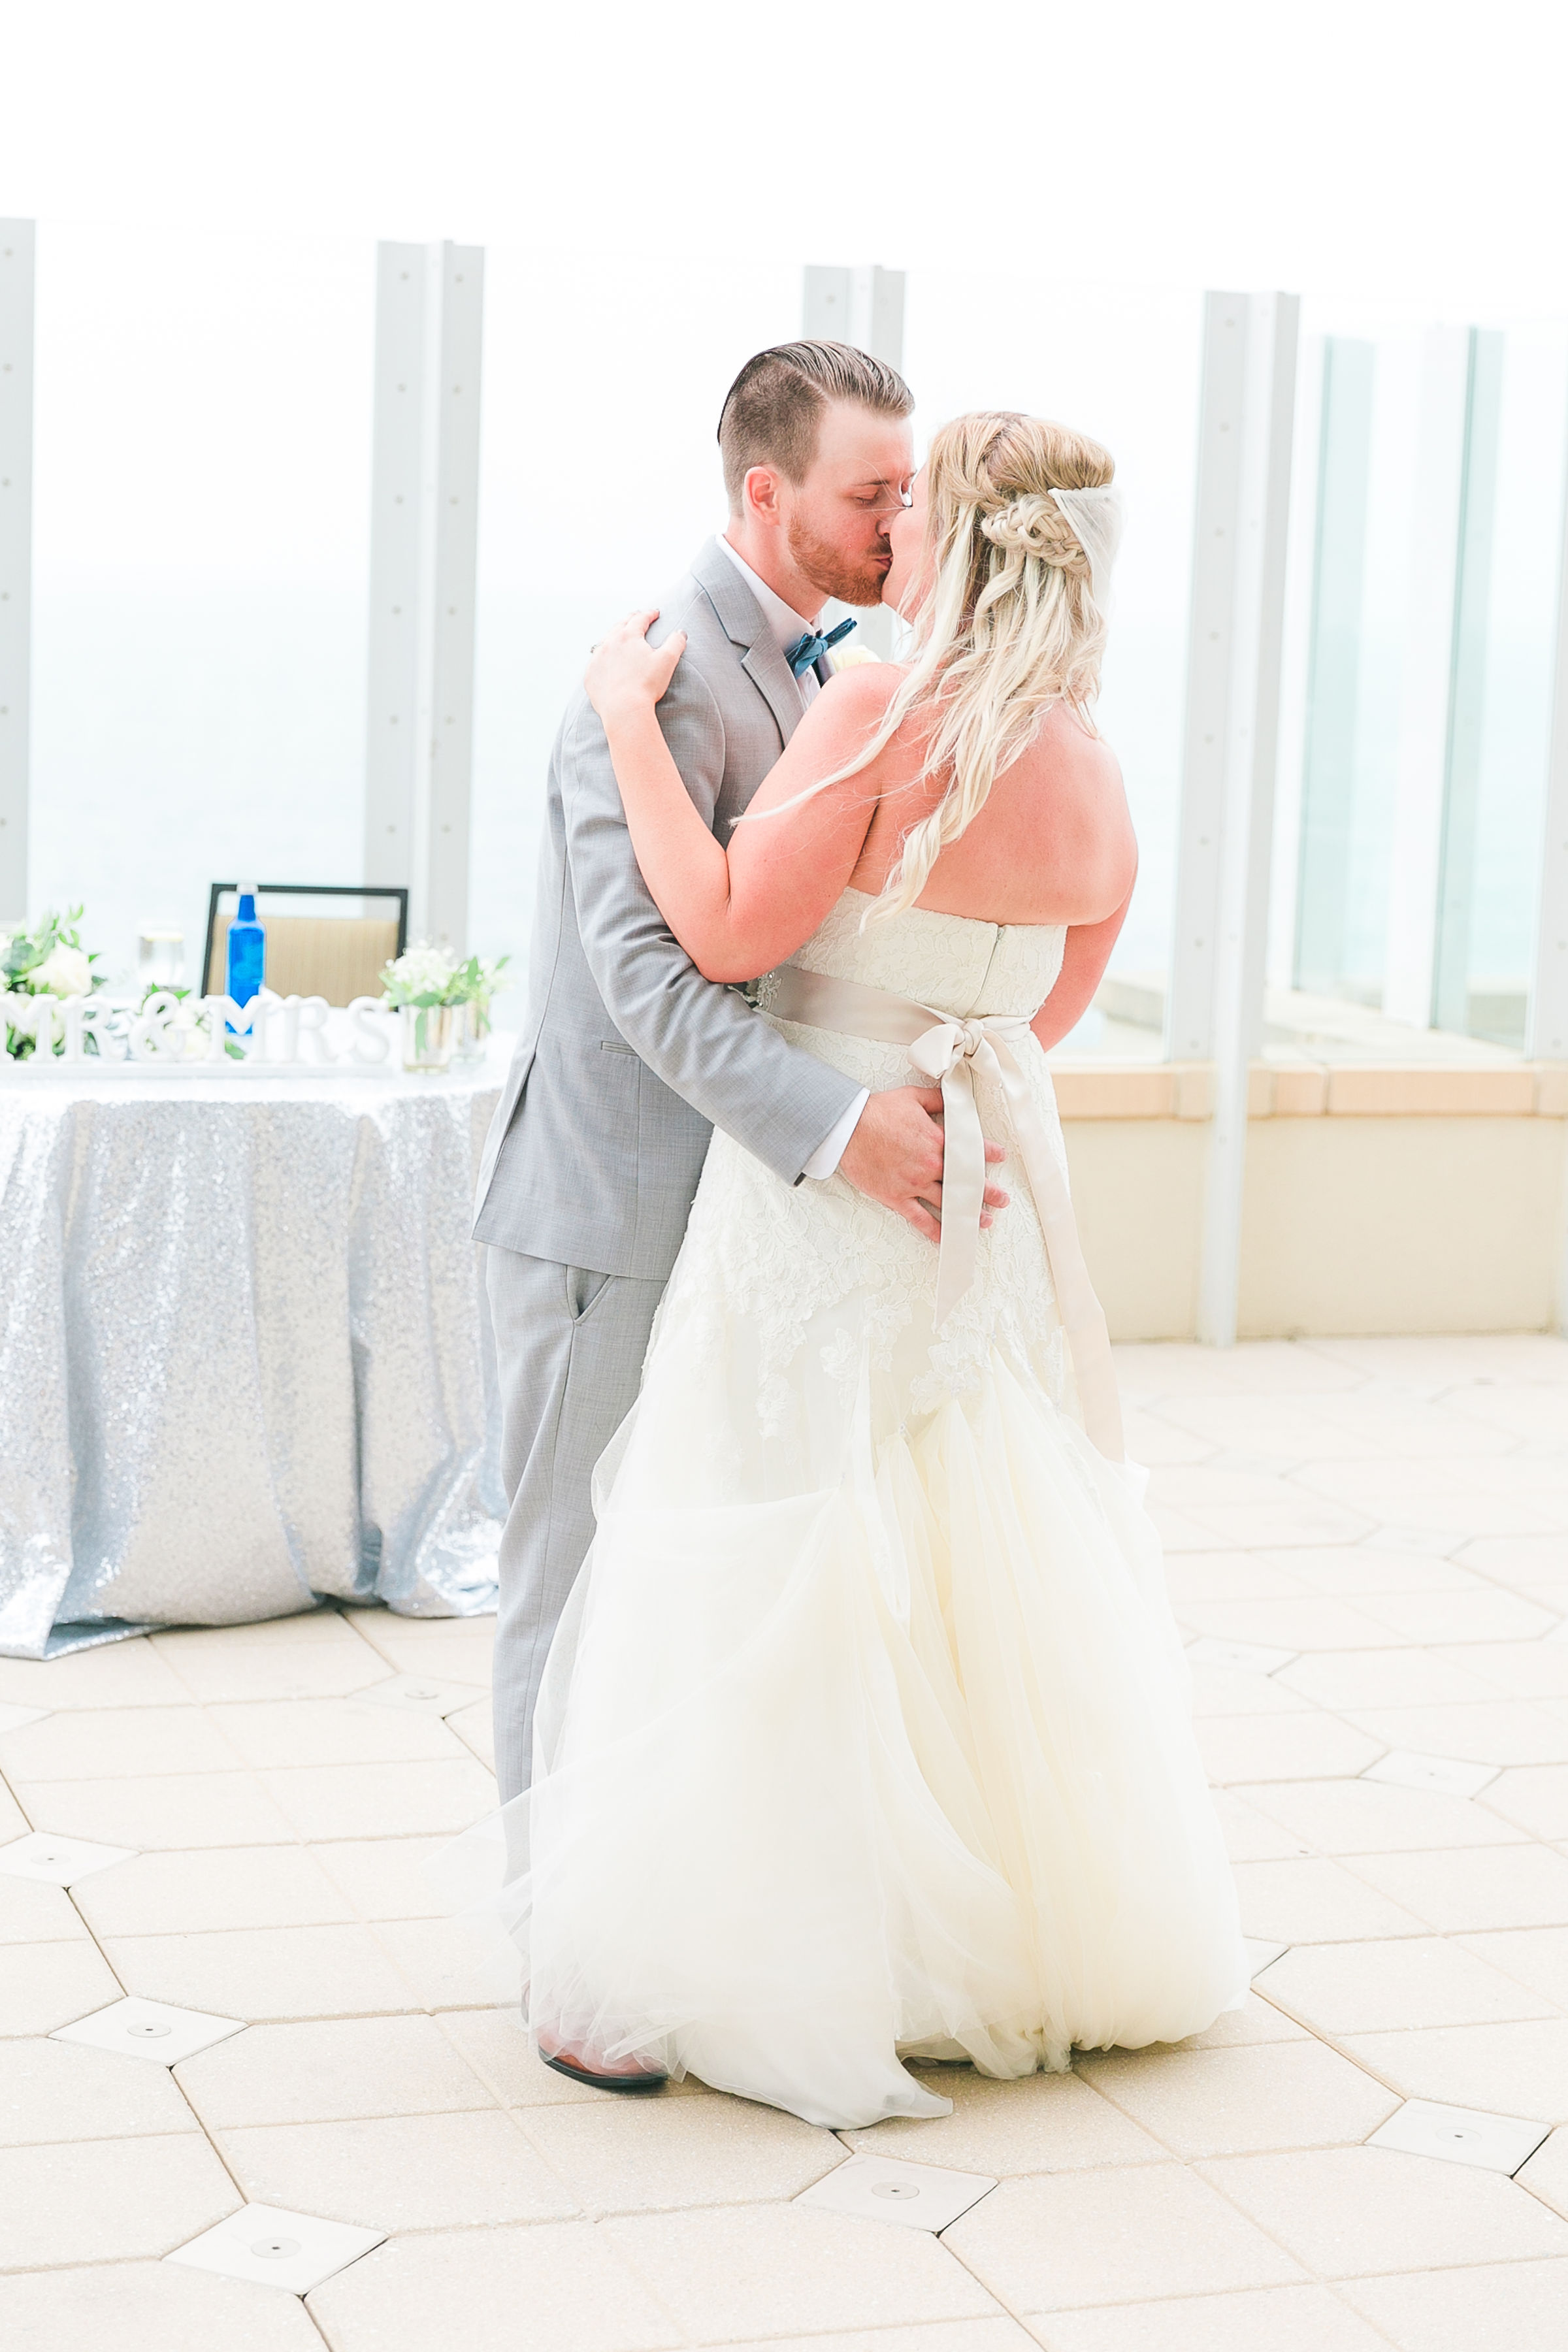 Lauren&Ryan_Reception-127.jpg